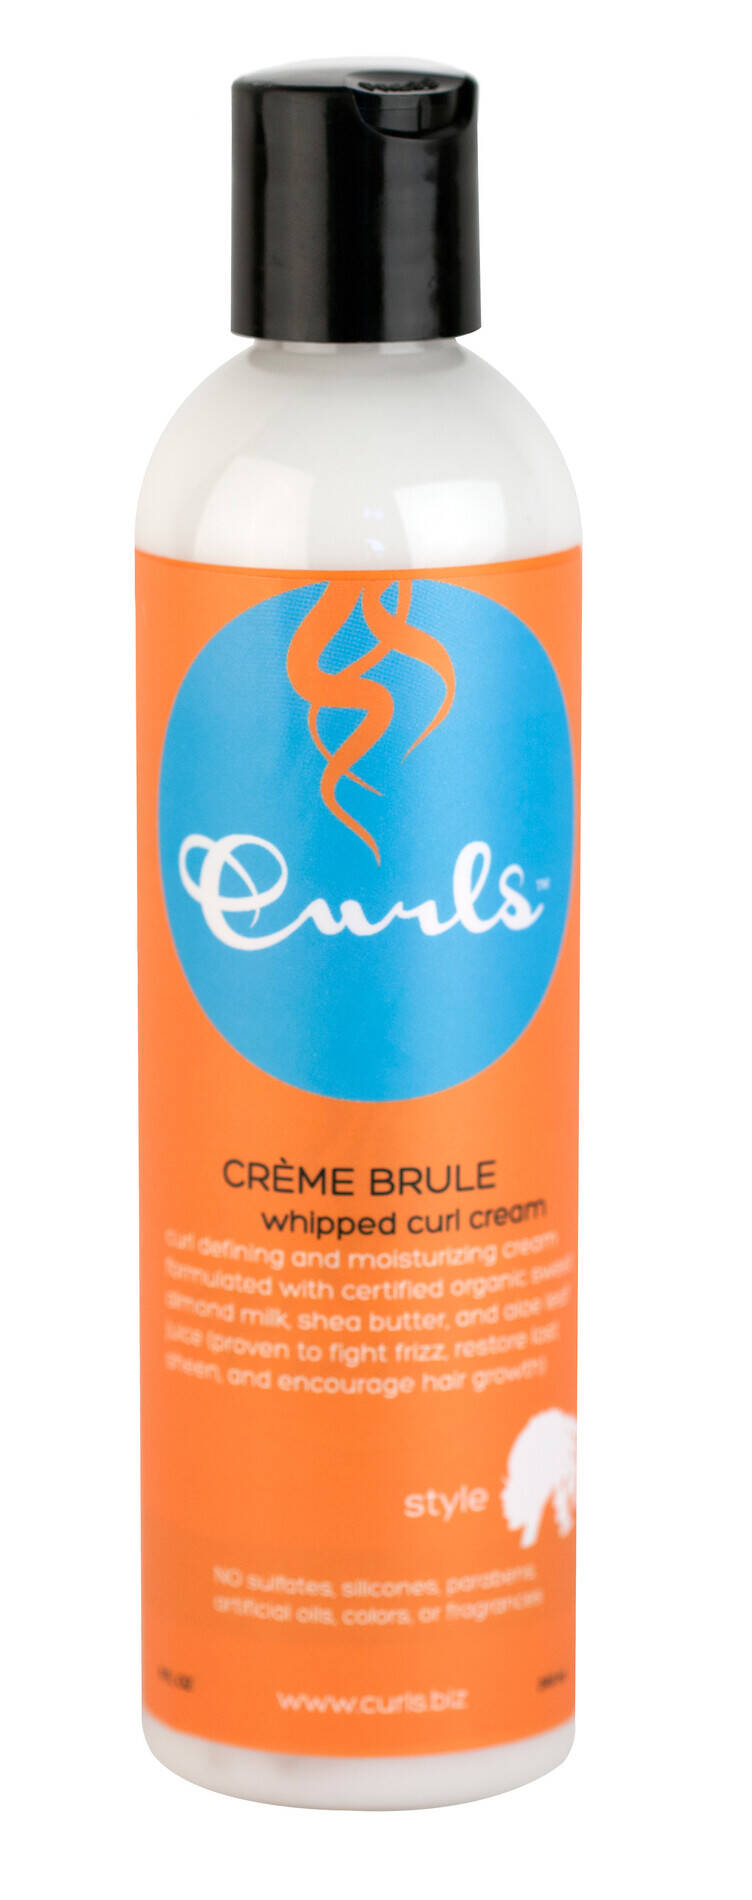 Curls Creme Brule Whipped Curl Creme, 240 ml*